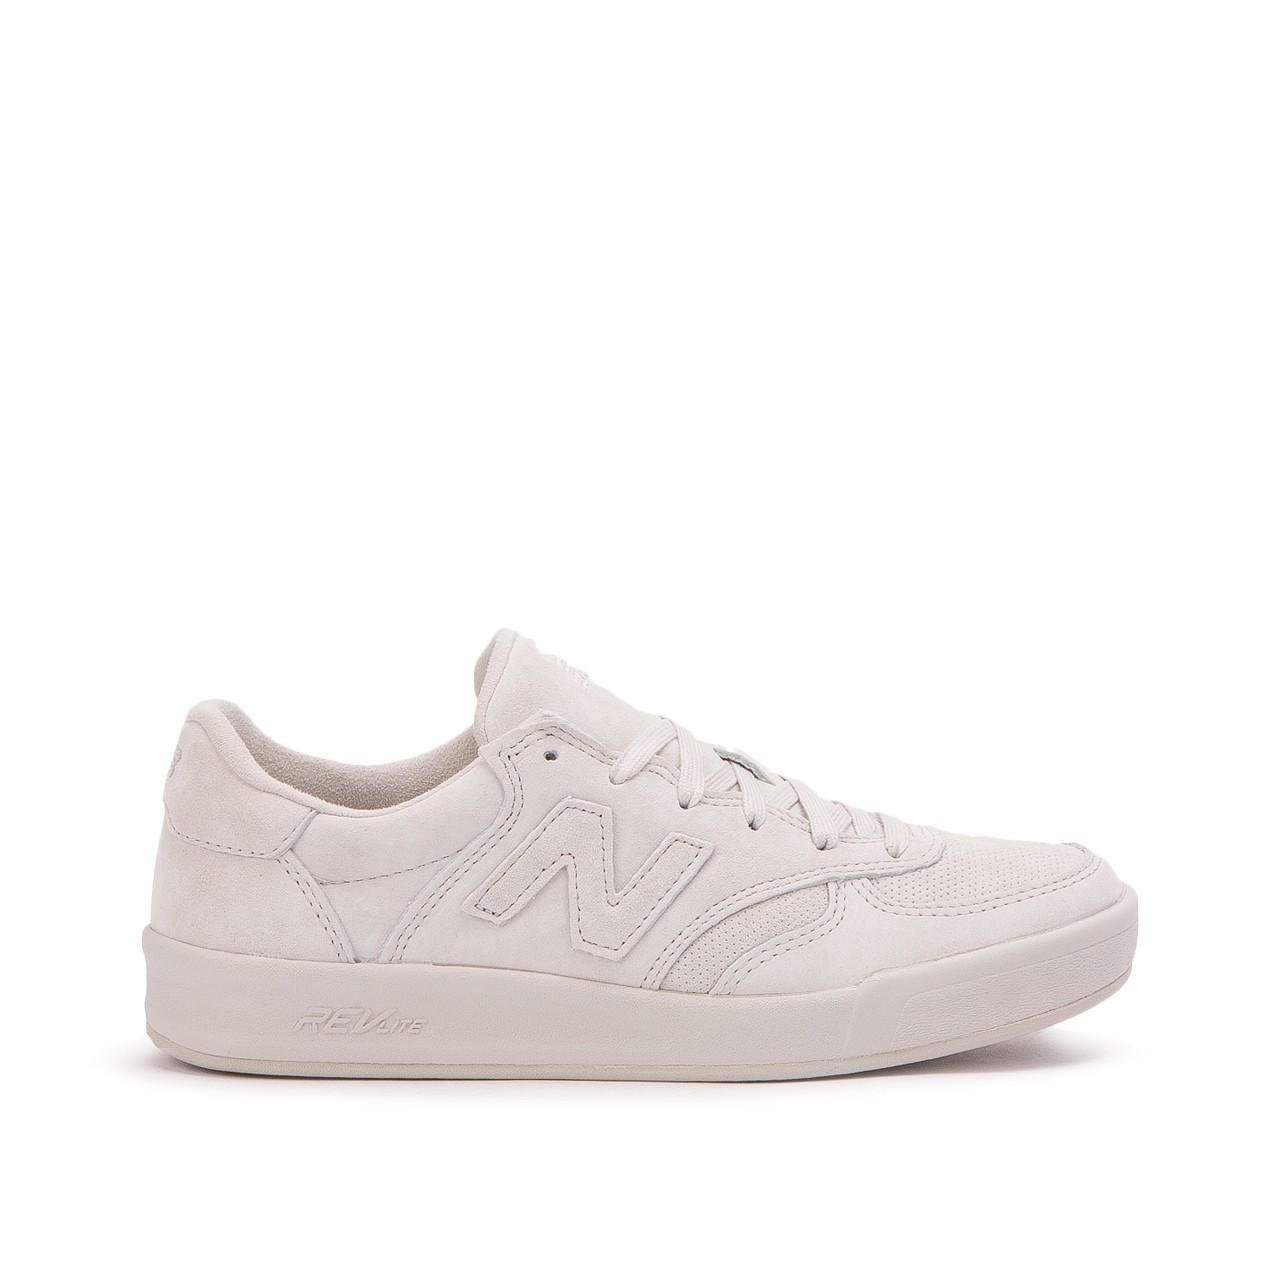 1657fbb3ebf New Balance Womens WRT300PM Low Top Lace Up Fashion Sneakers, Beige ...